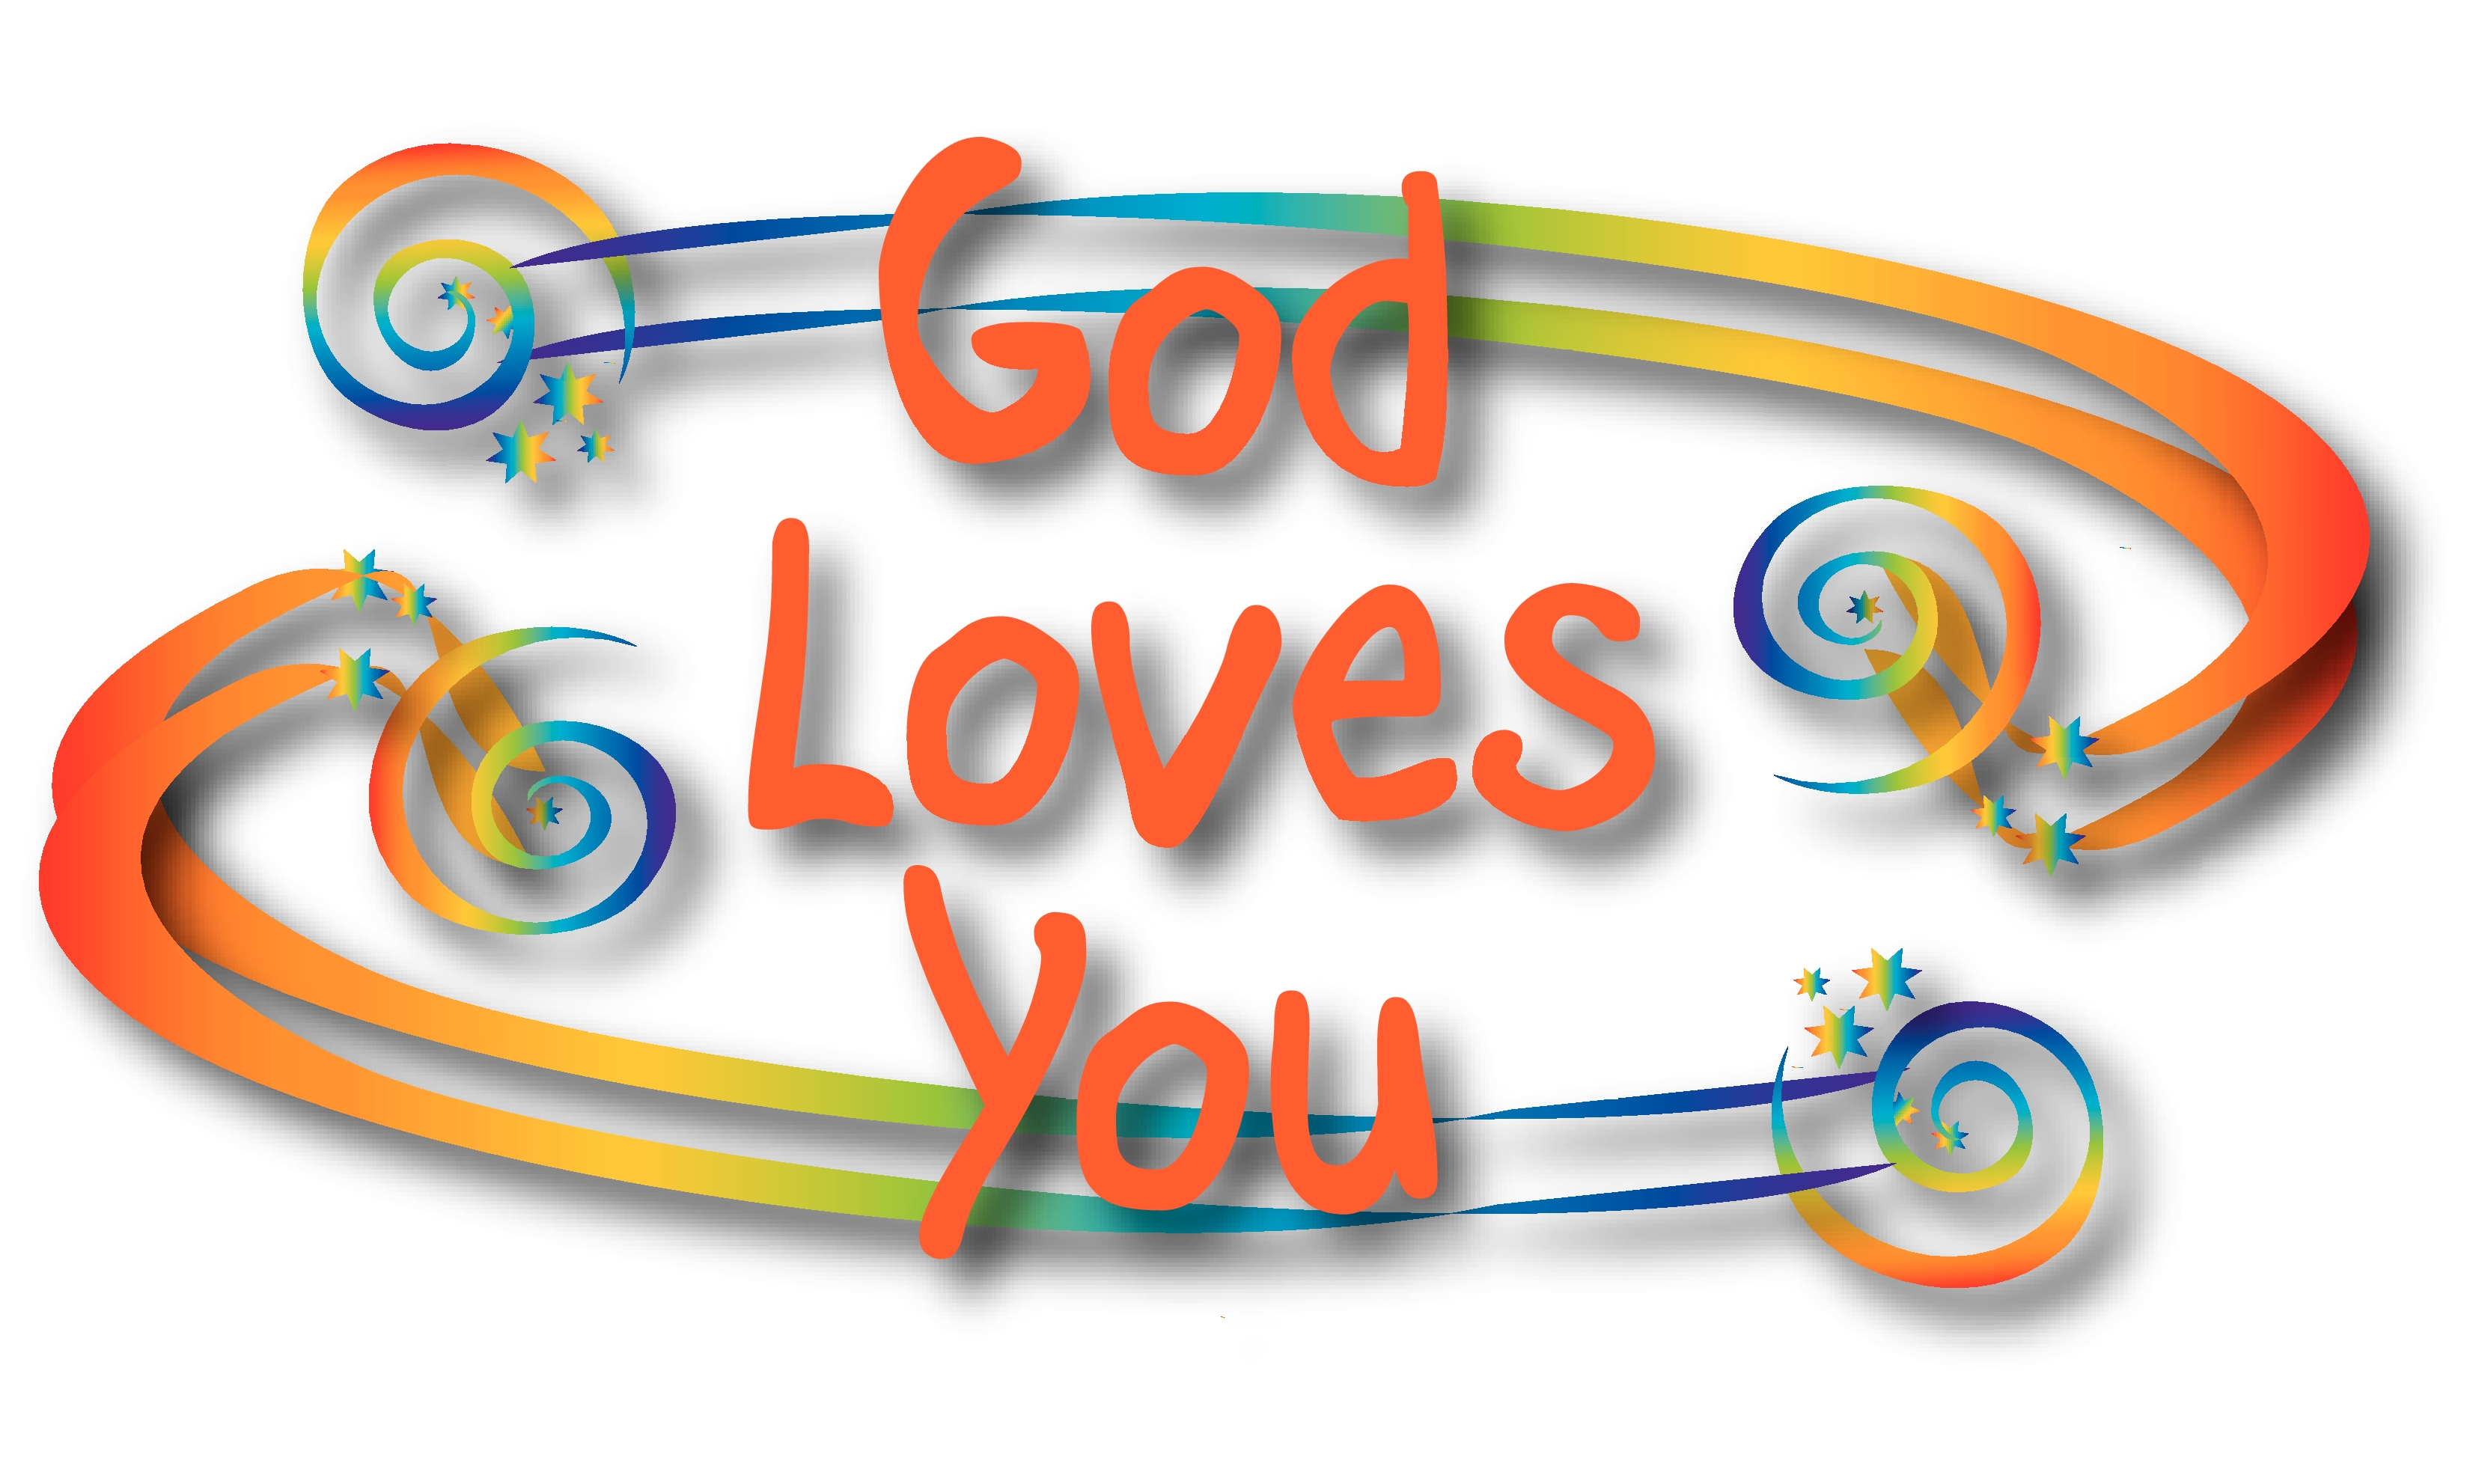 clipart god loves you - photo #3